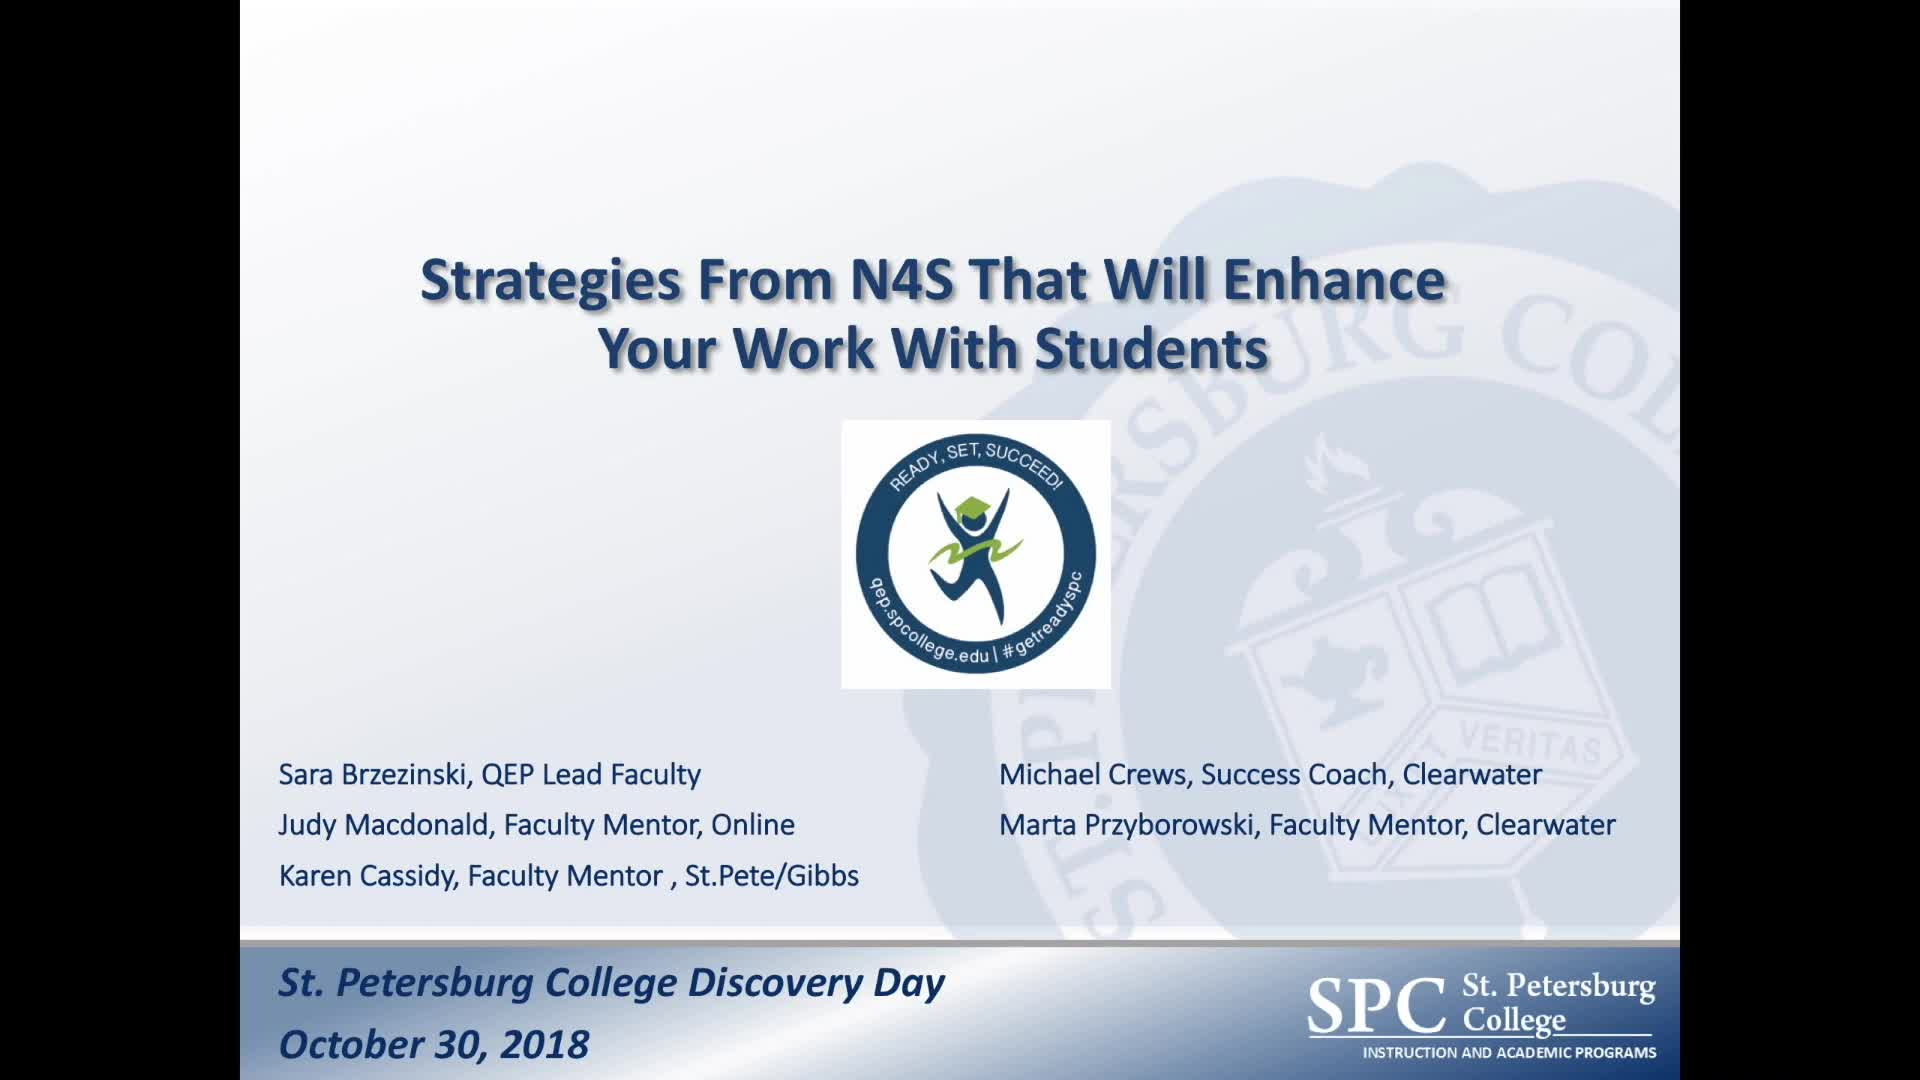 Strategies From N4S That Will Enhance Your Work Wi...